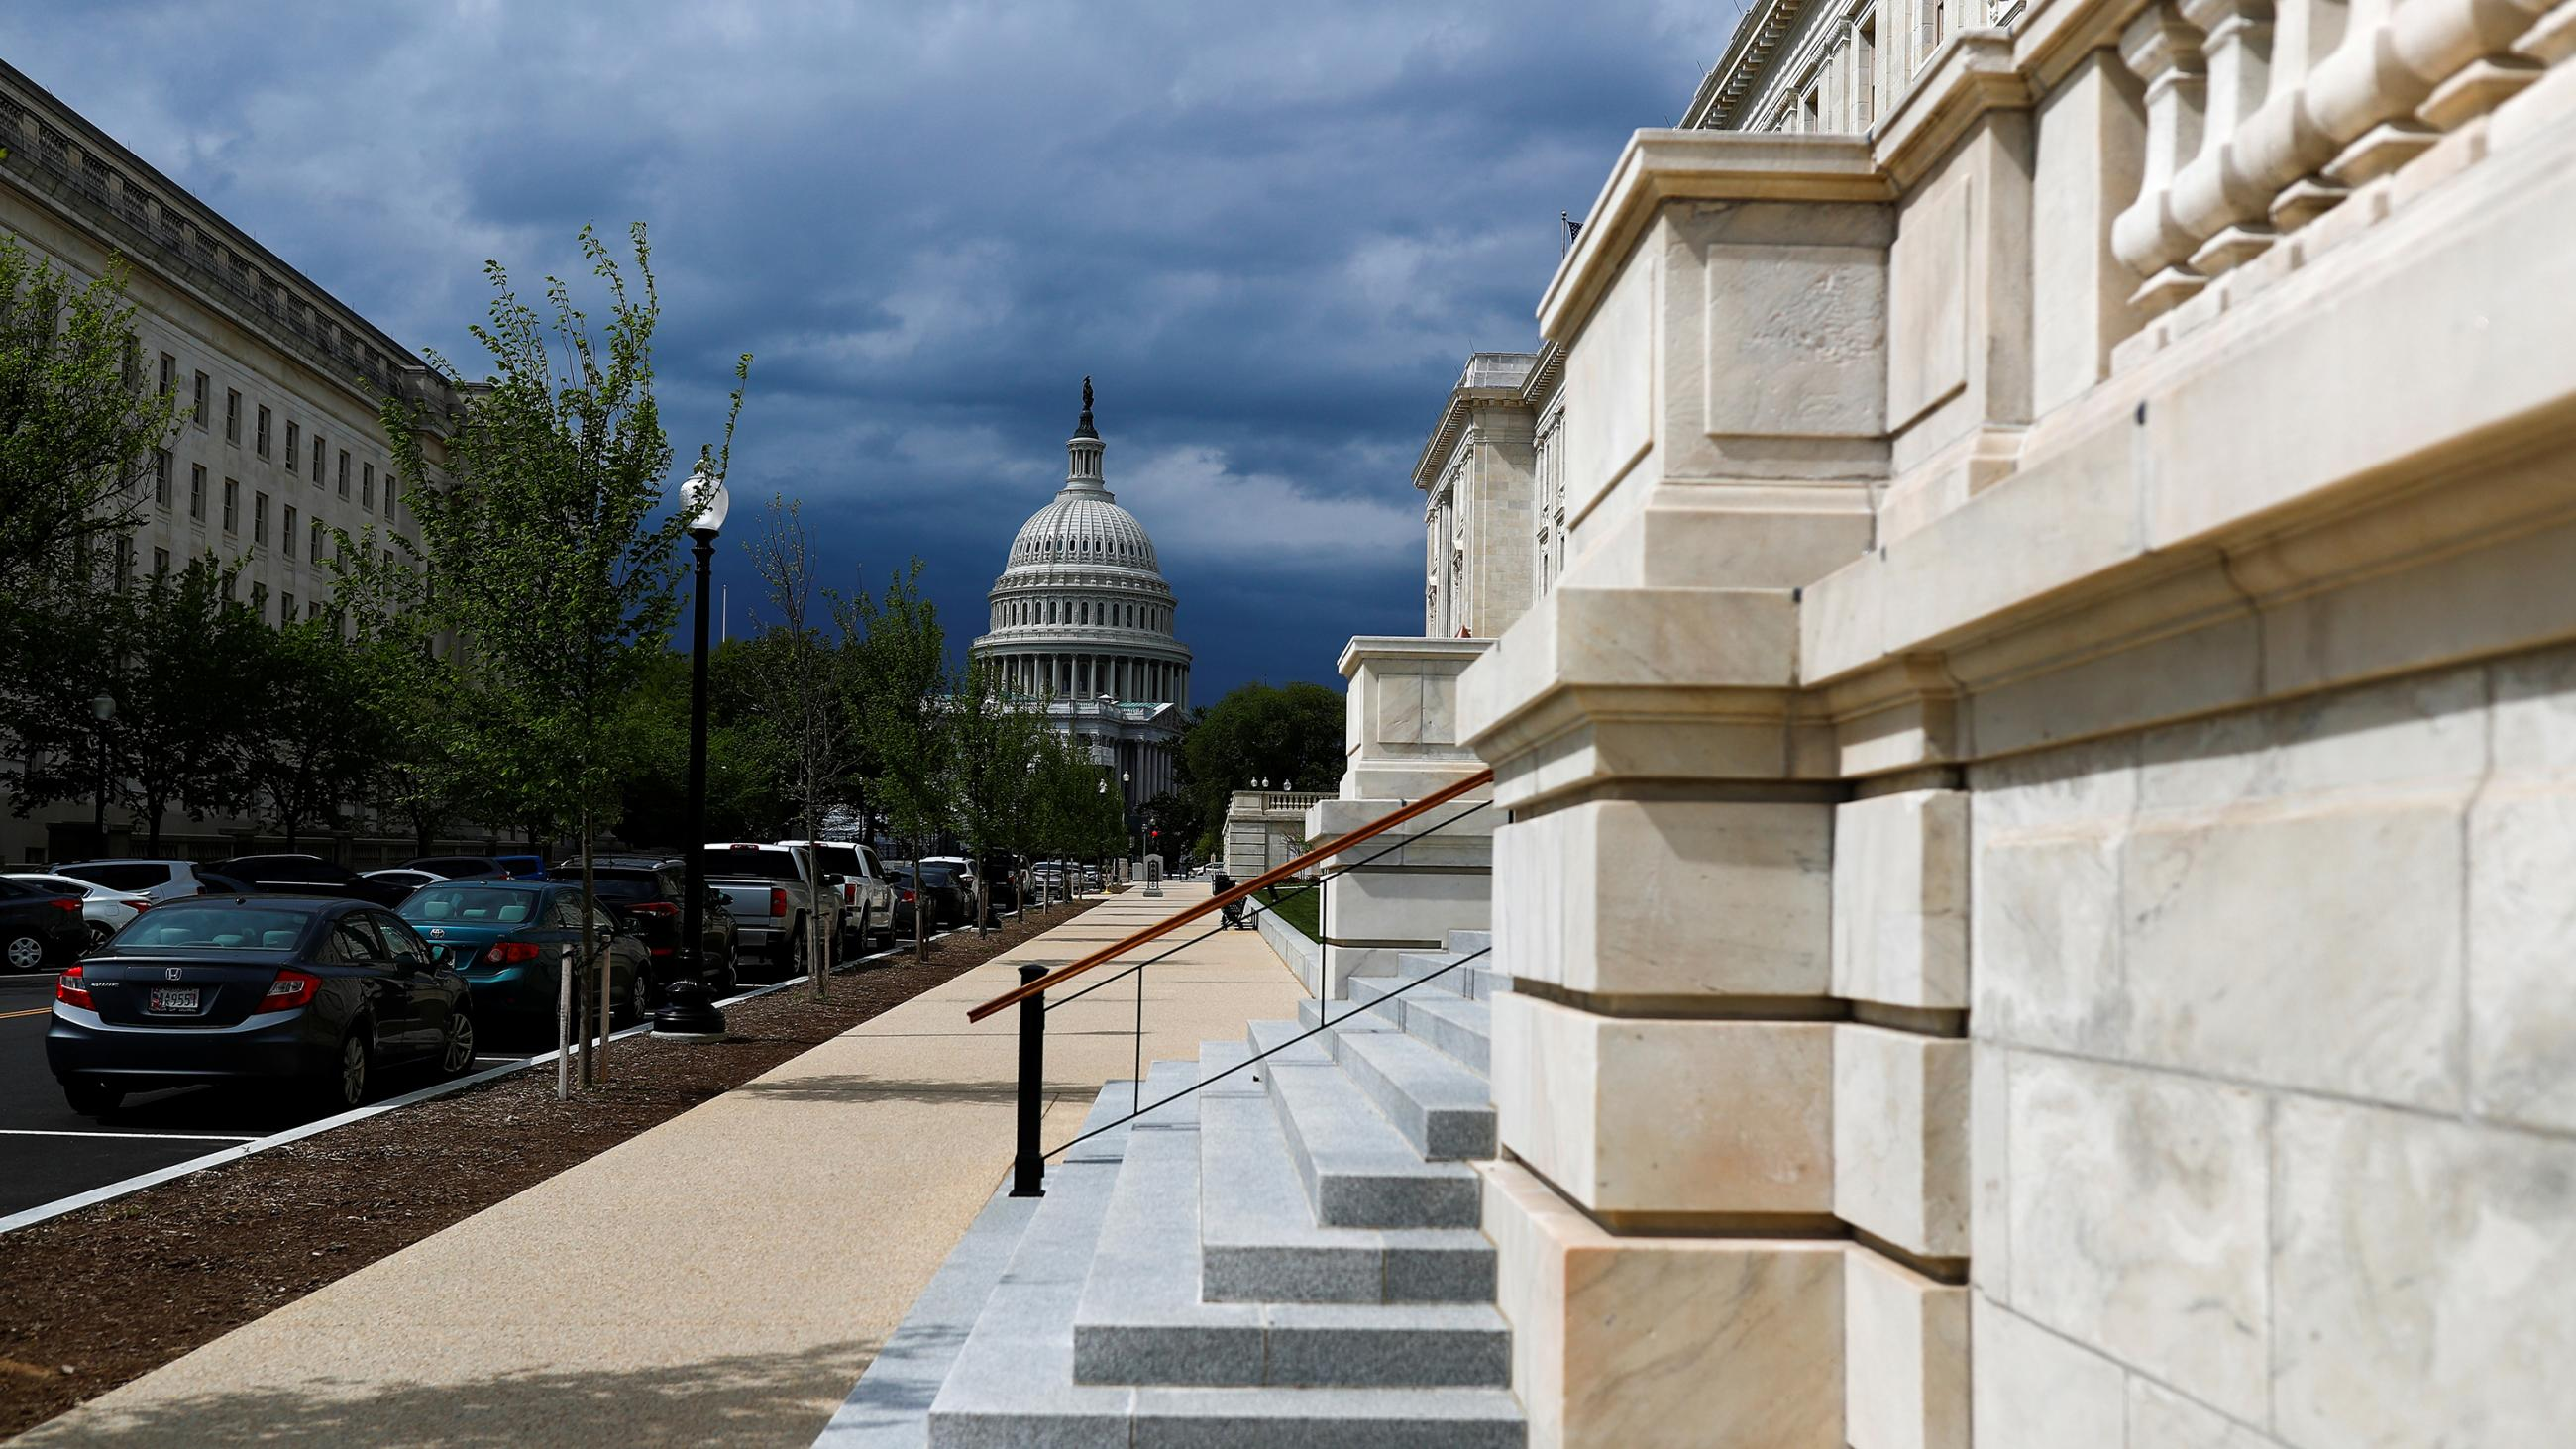 Picture shows the Capitol building from a distance with a set of stone steps in the foreground.